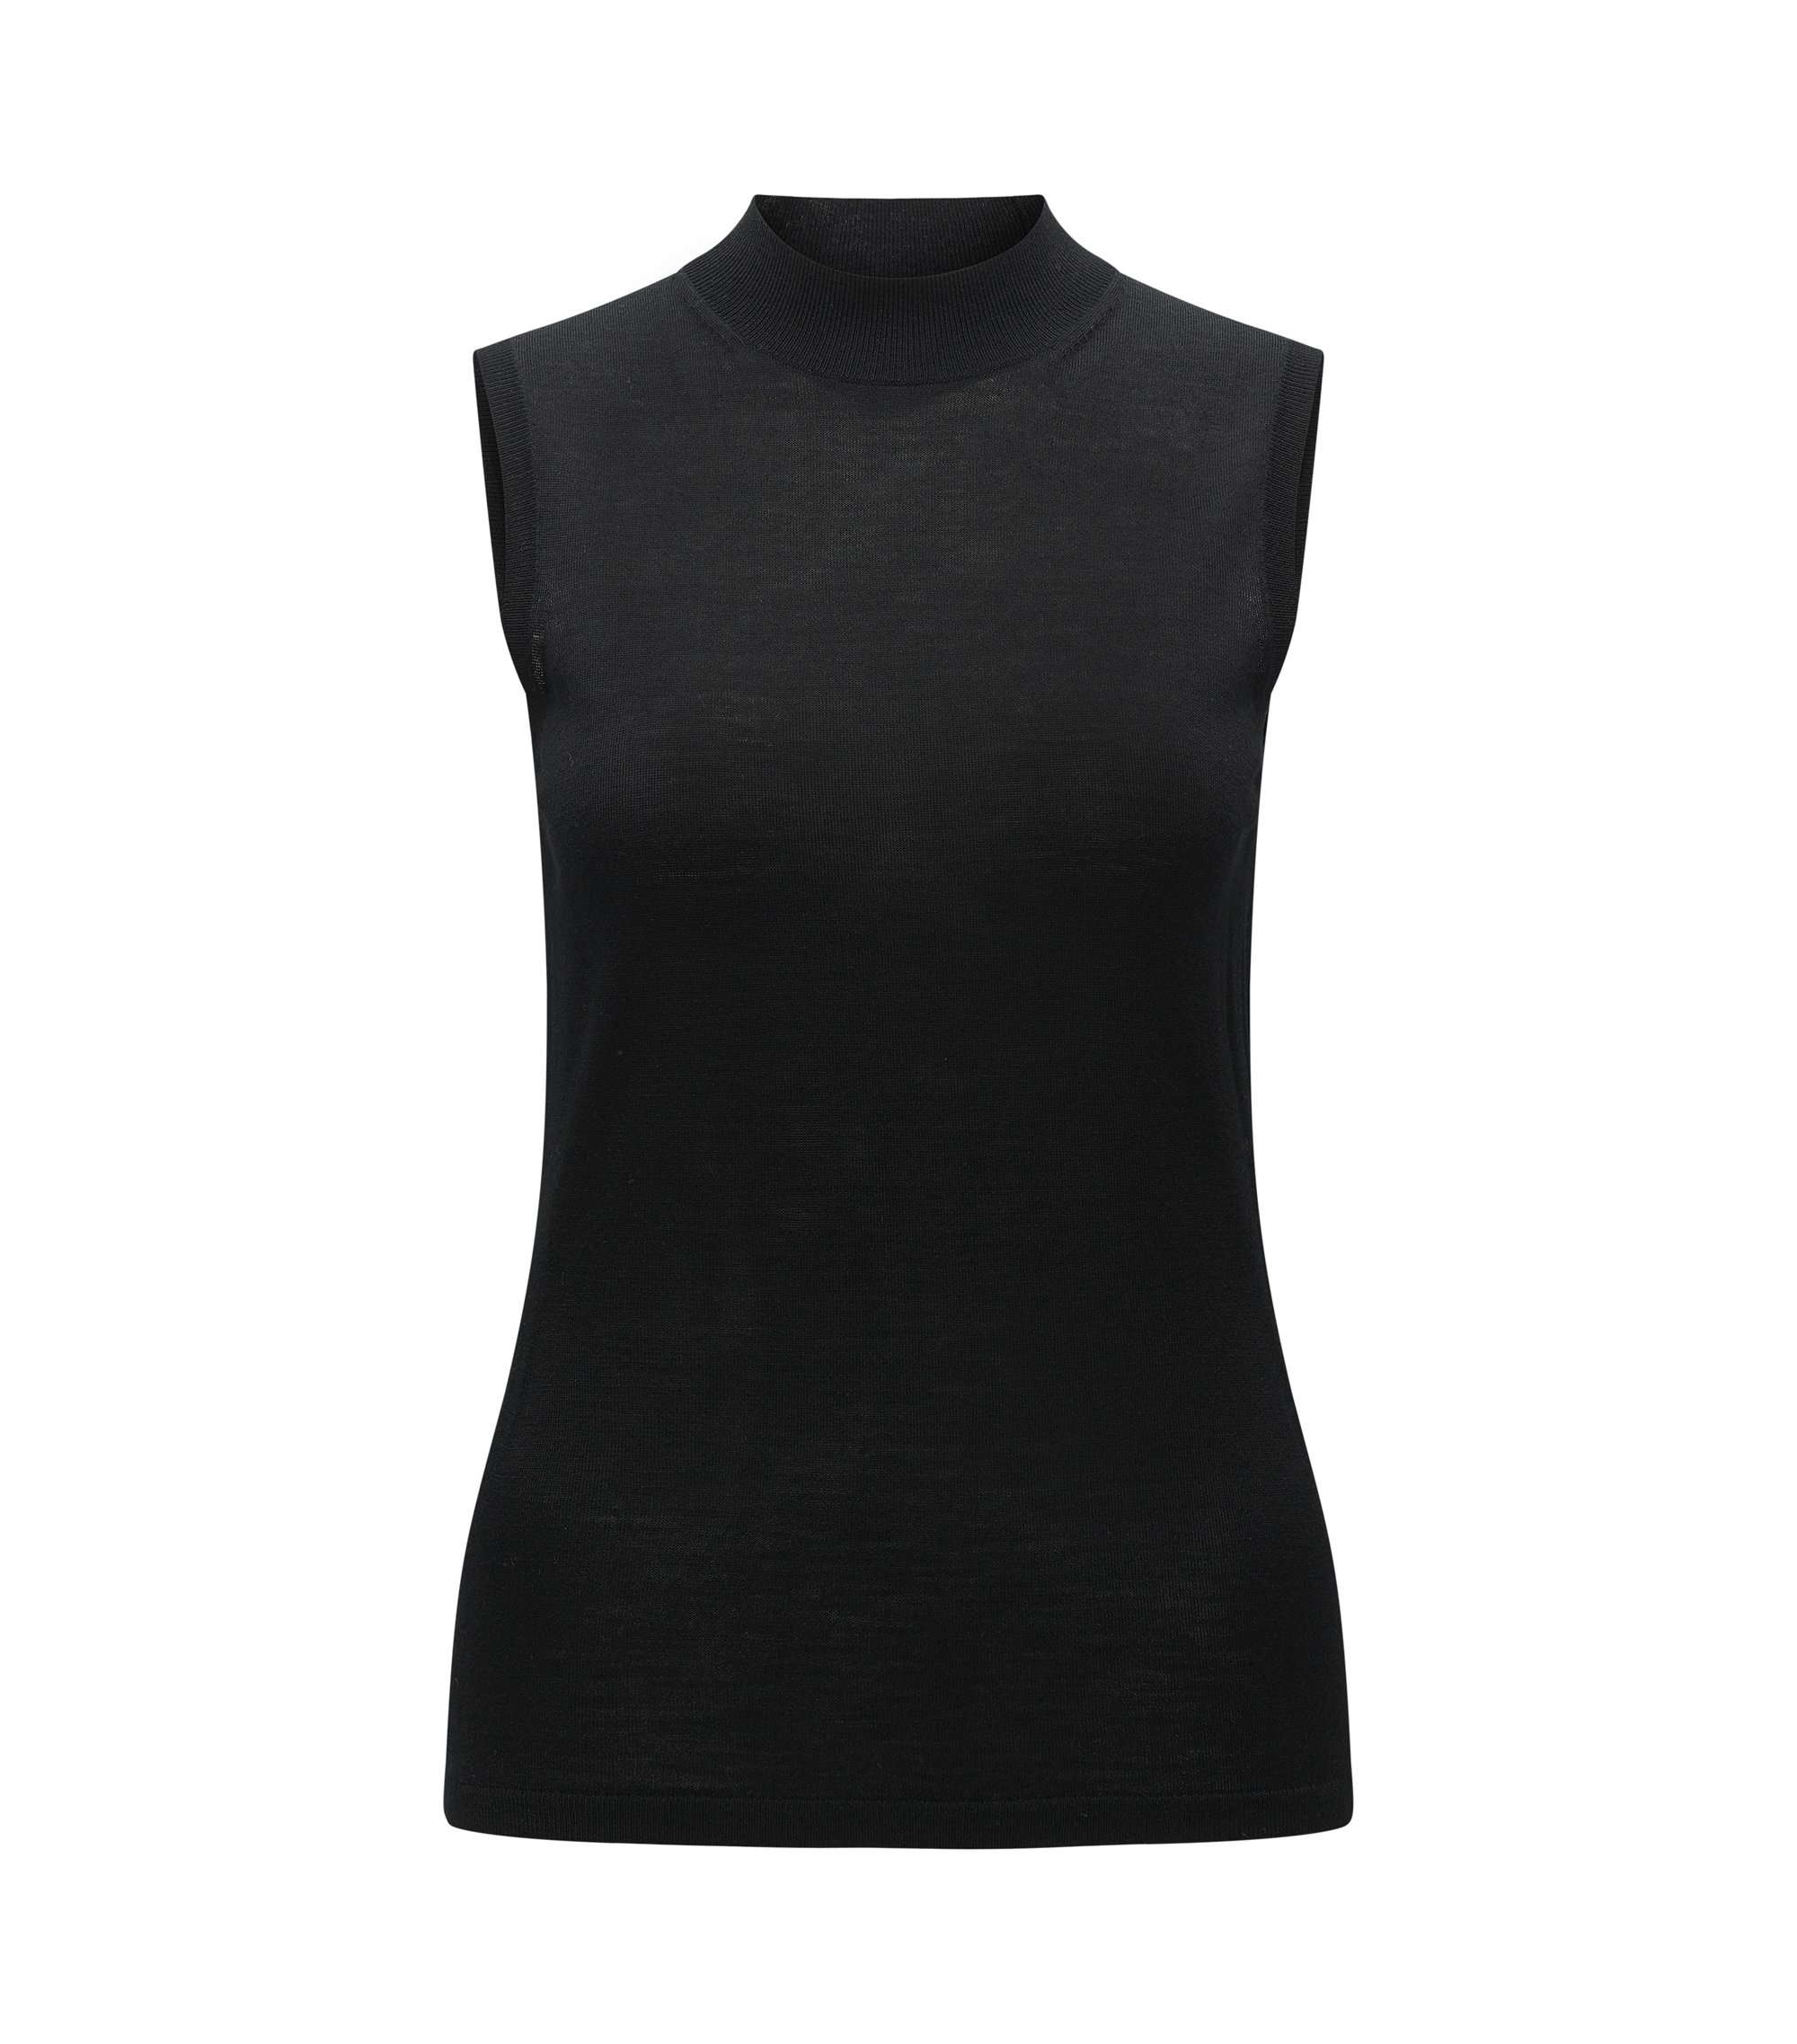 Virgin Wool Sleeveless Sweater Top | Foebe, Black